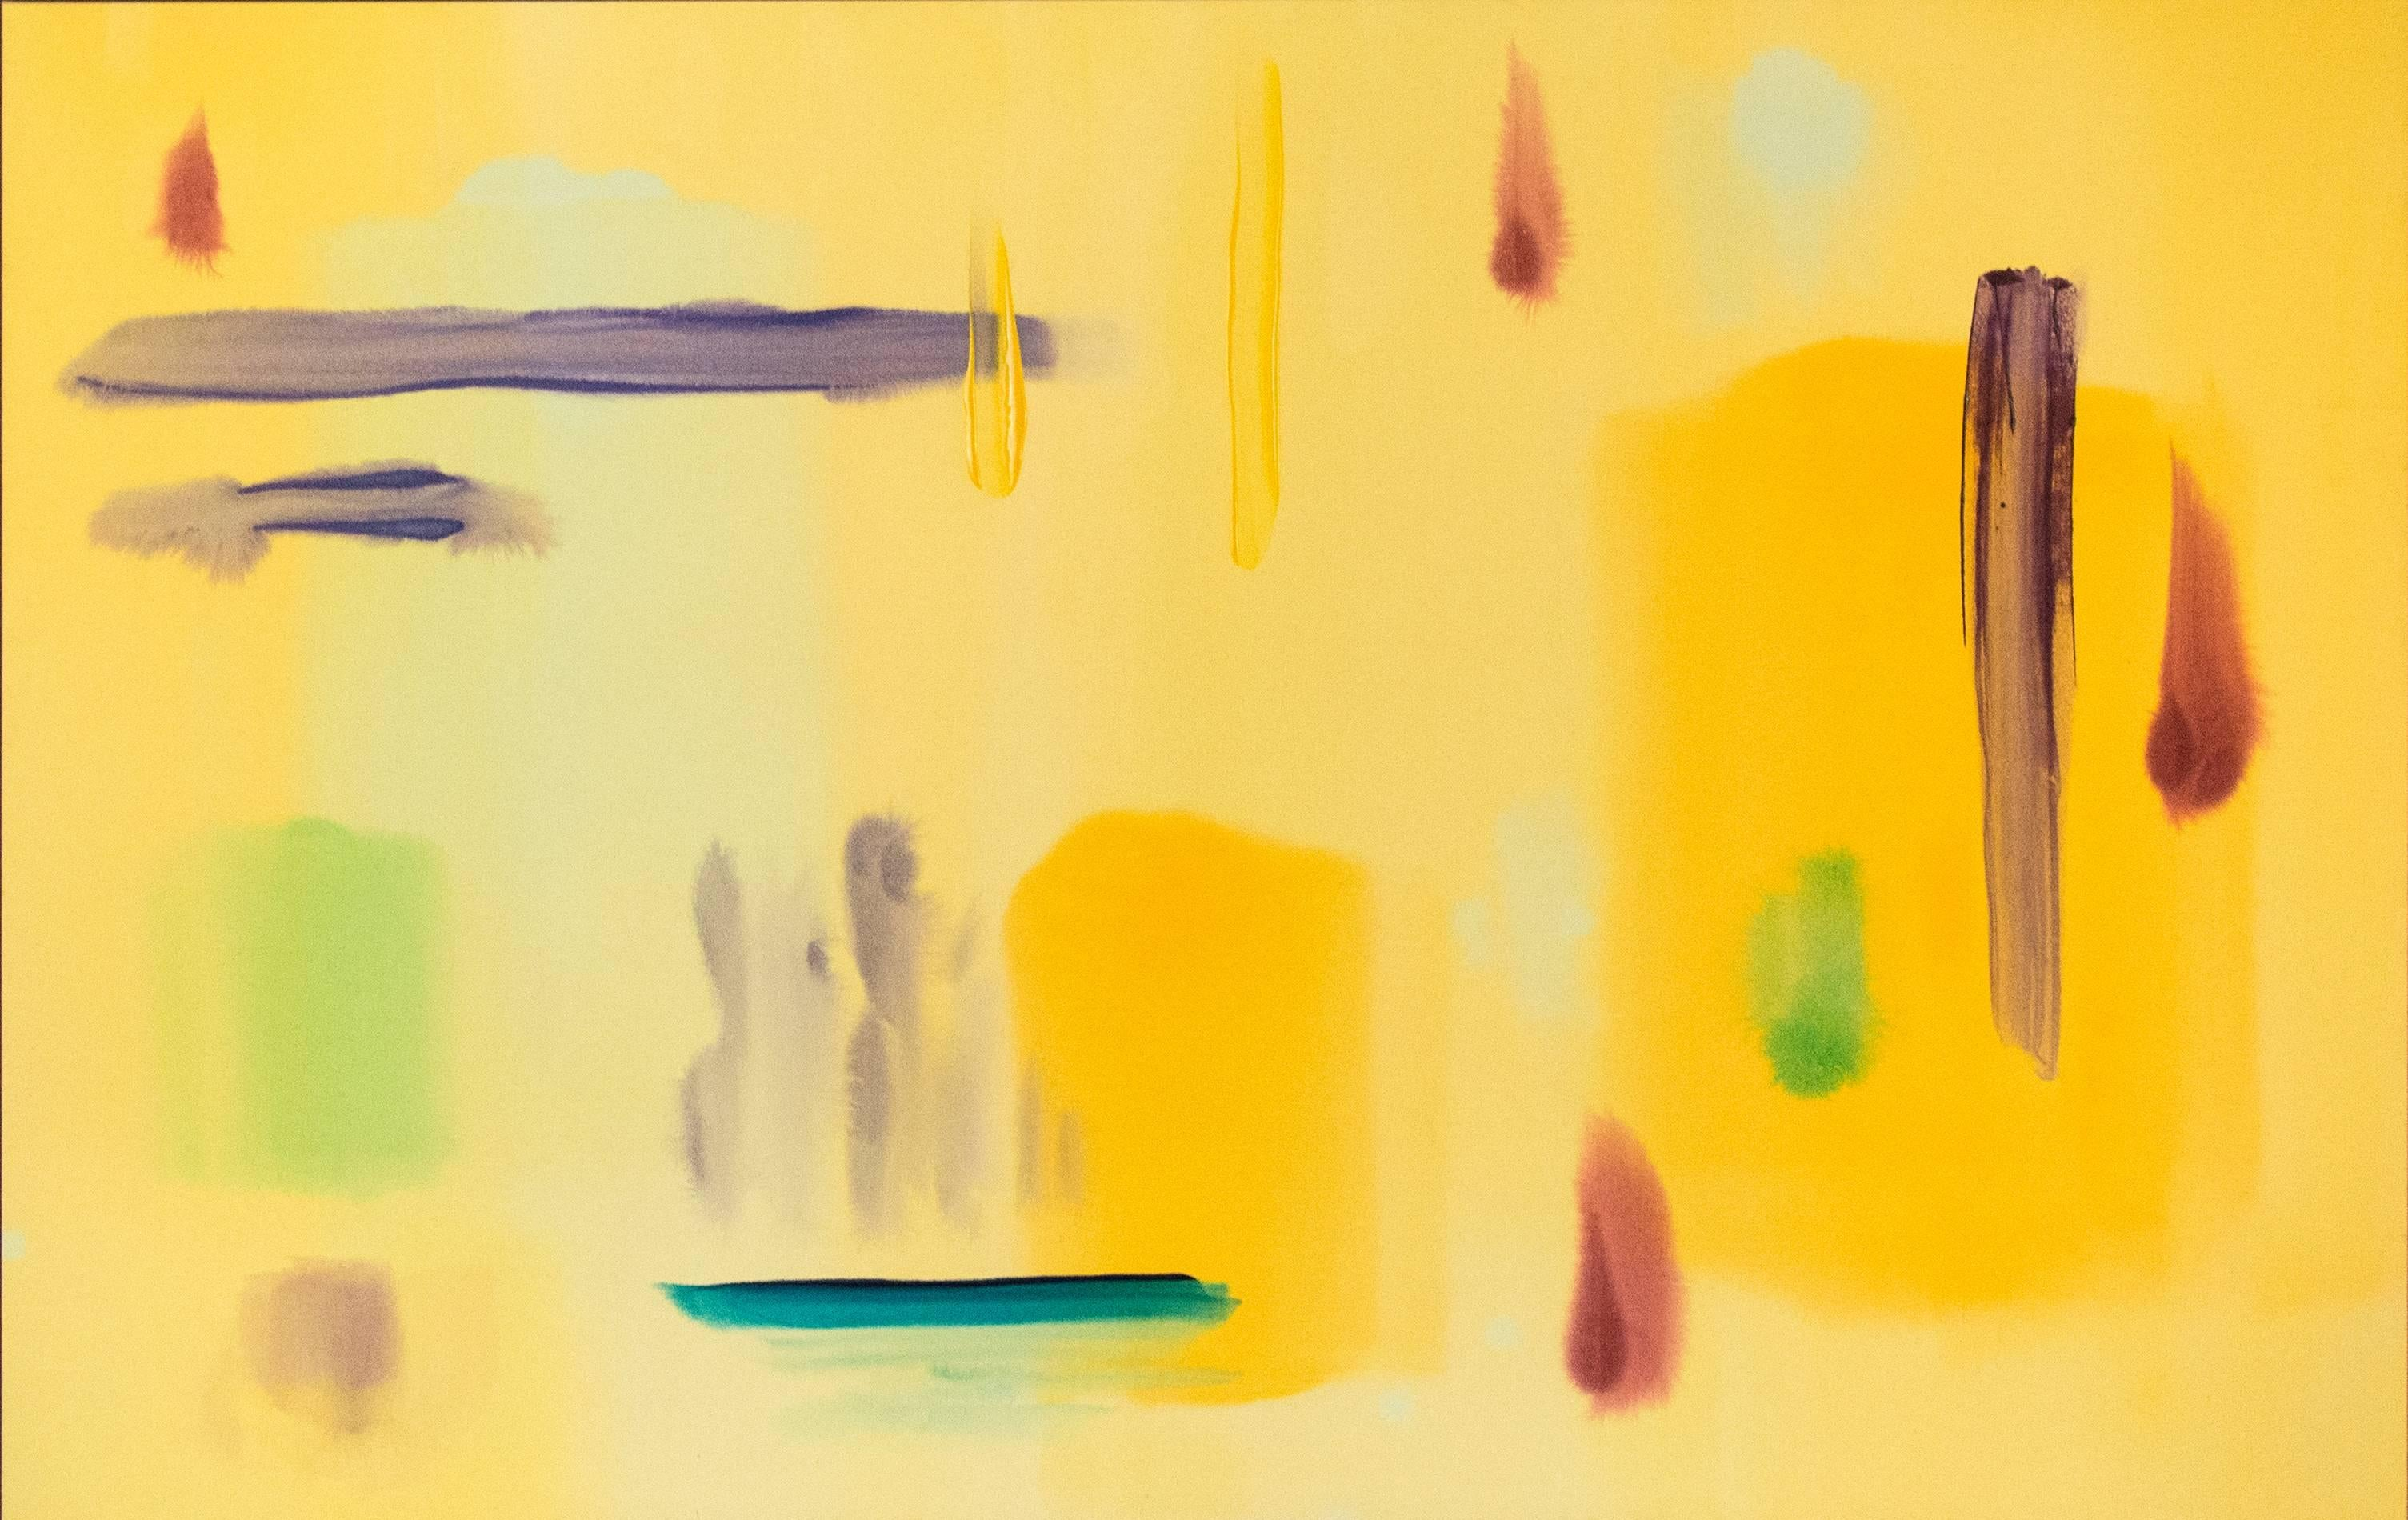 Sizzle Yellow - Large yellow, violet, aqua blue gestural abstract painting